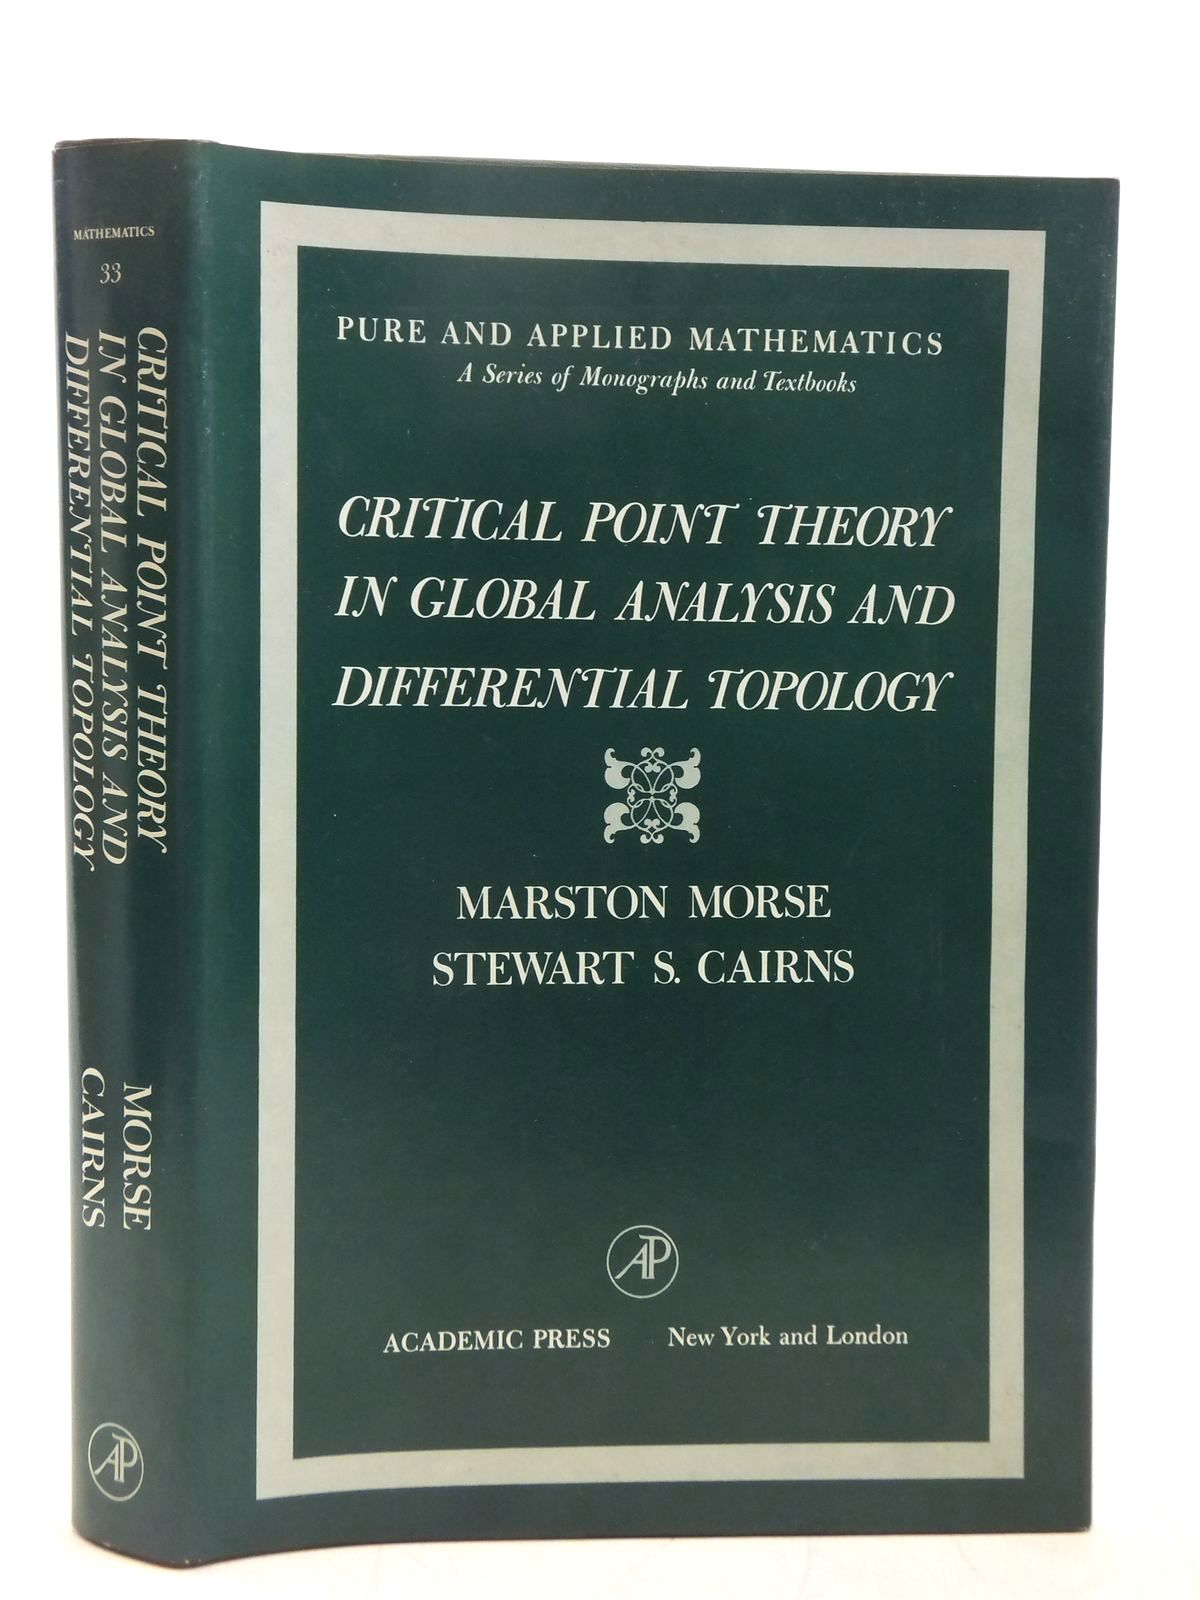 CRITICAL POINT THEORY IN GLOBAL ANALYSIS AND DIFFERENTIAL